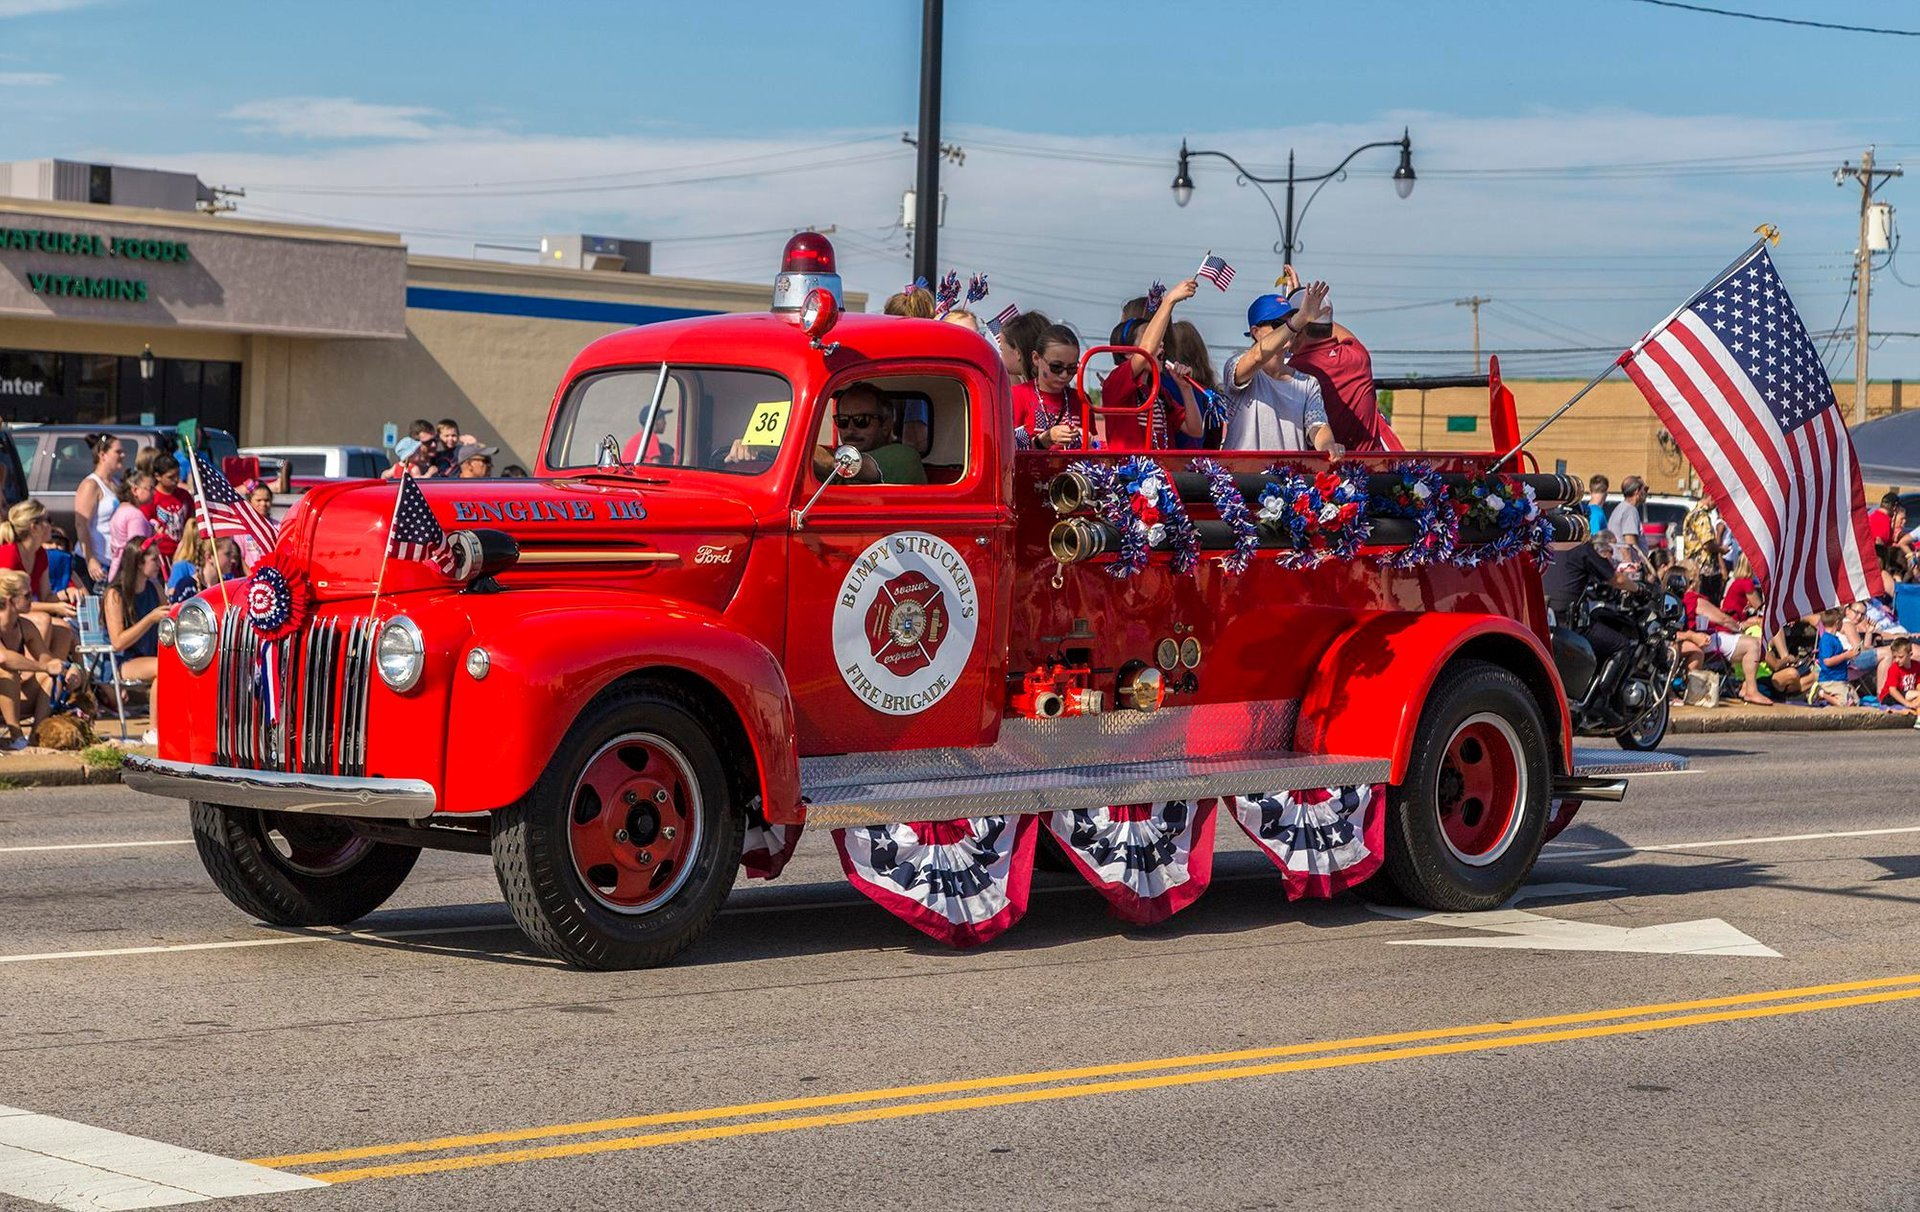 4th of July parade in Edmond 2020